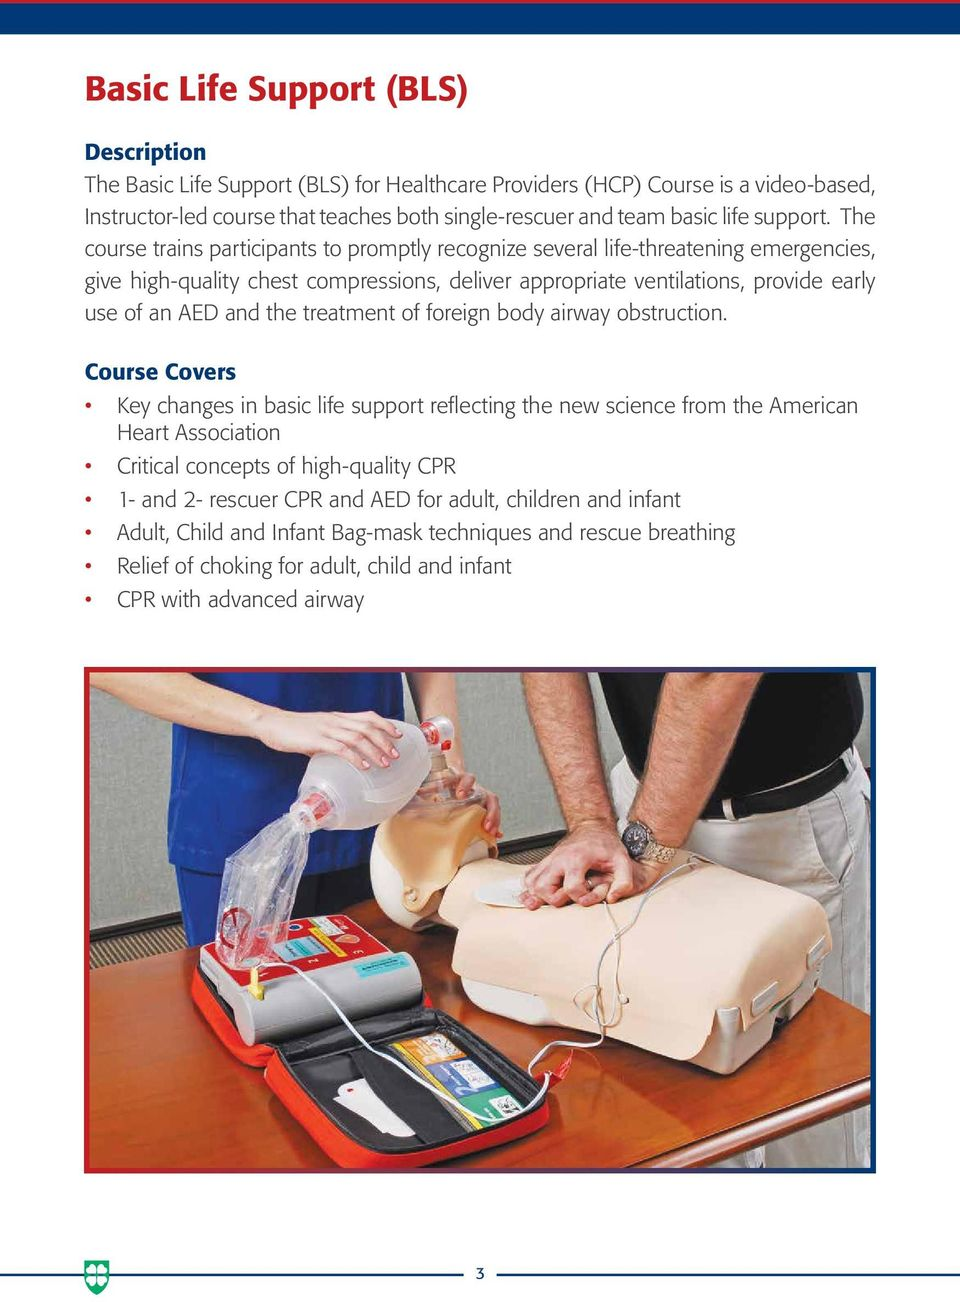 The course trains participants to promptly recognize several life-threatening emergencies, give high-quality chest compressions, deliver appropriate ventilations, provide early use of an AED and the